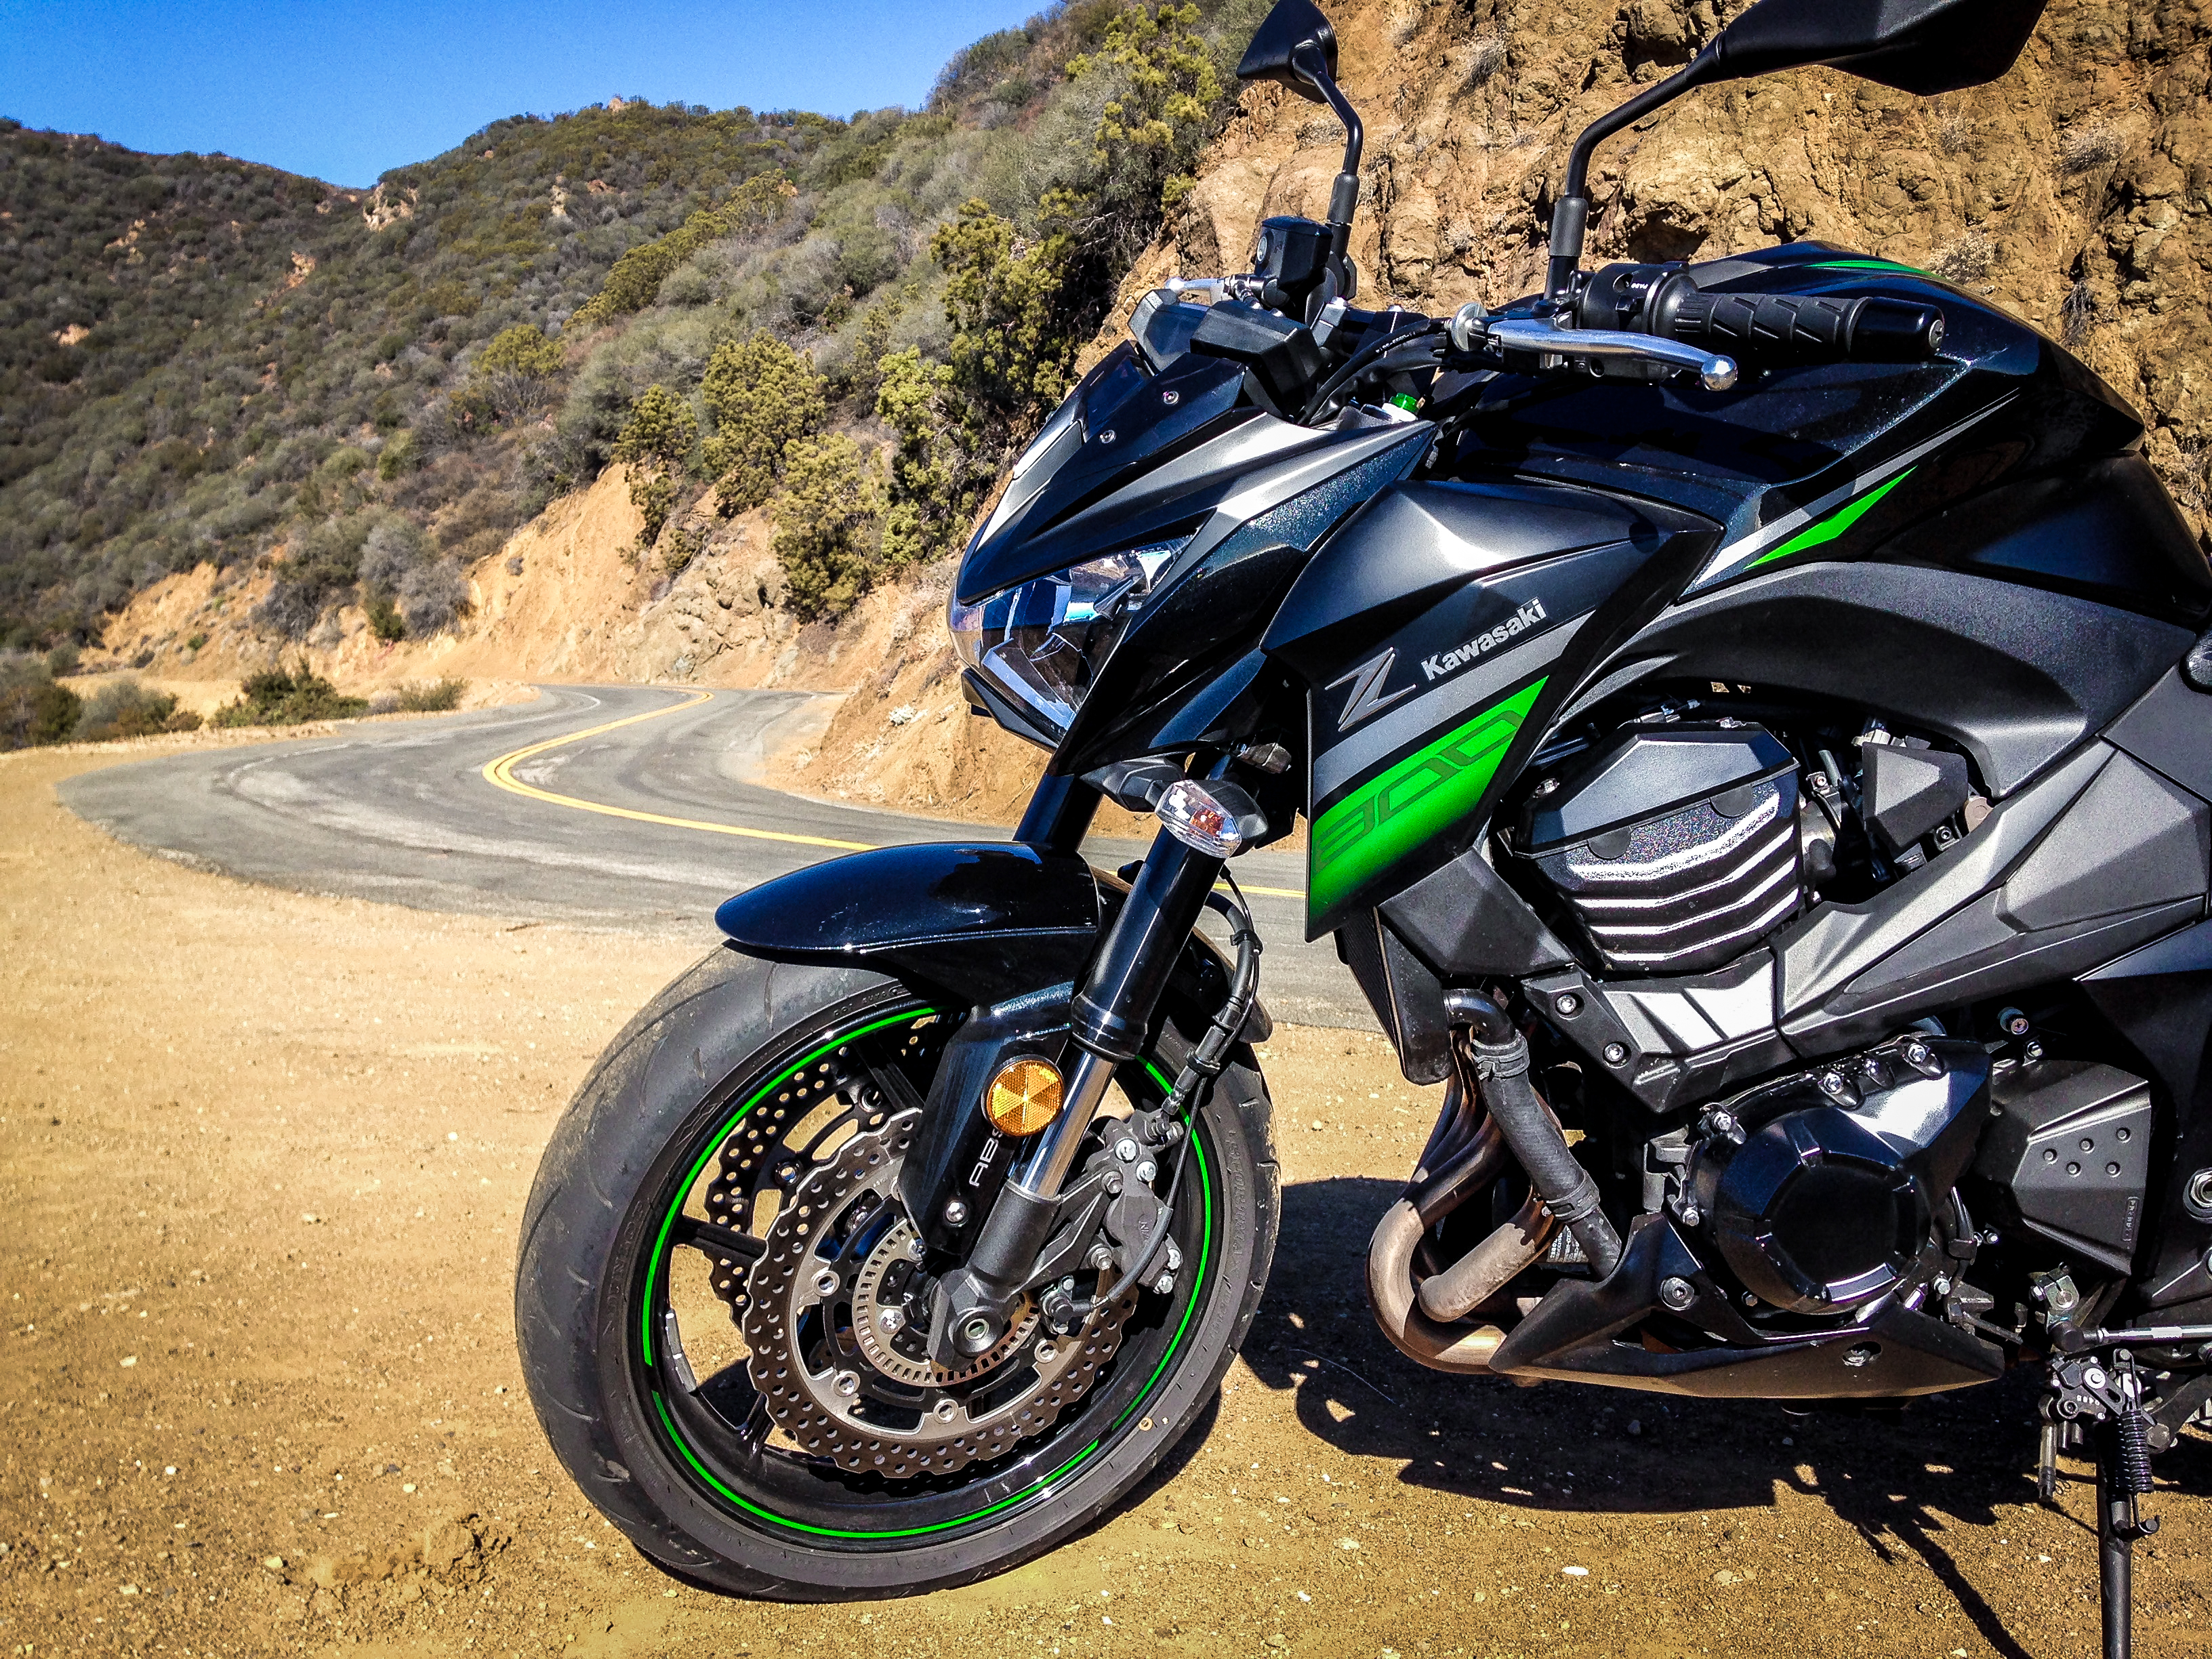 2016 Kawasaki Z800 Review - RevZilla